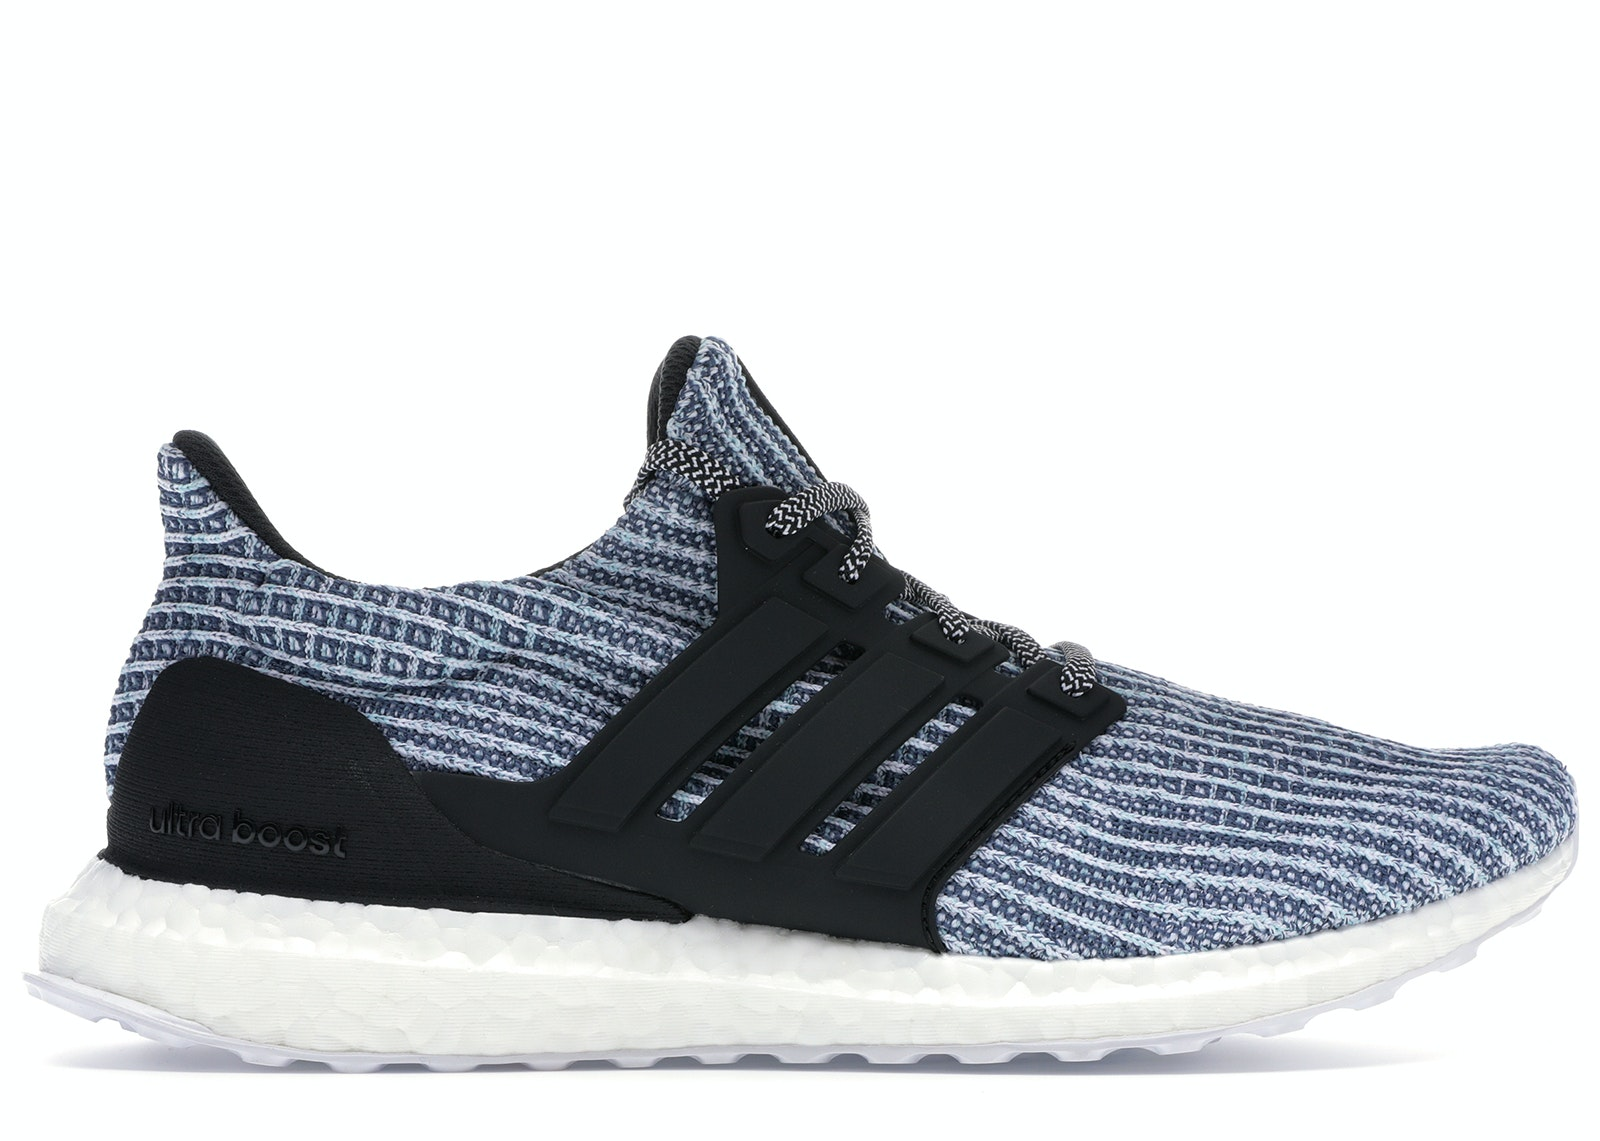 adidas Ultra Boost 4.0 Parley Carbon Blue Spirit